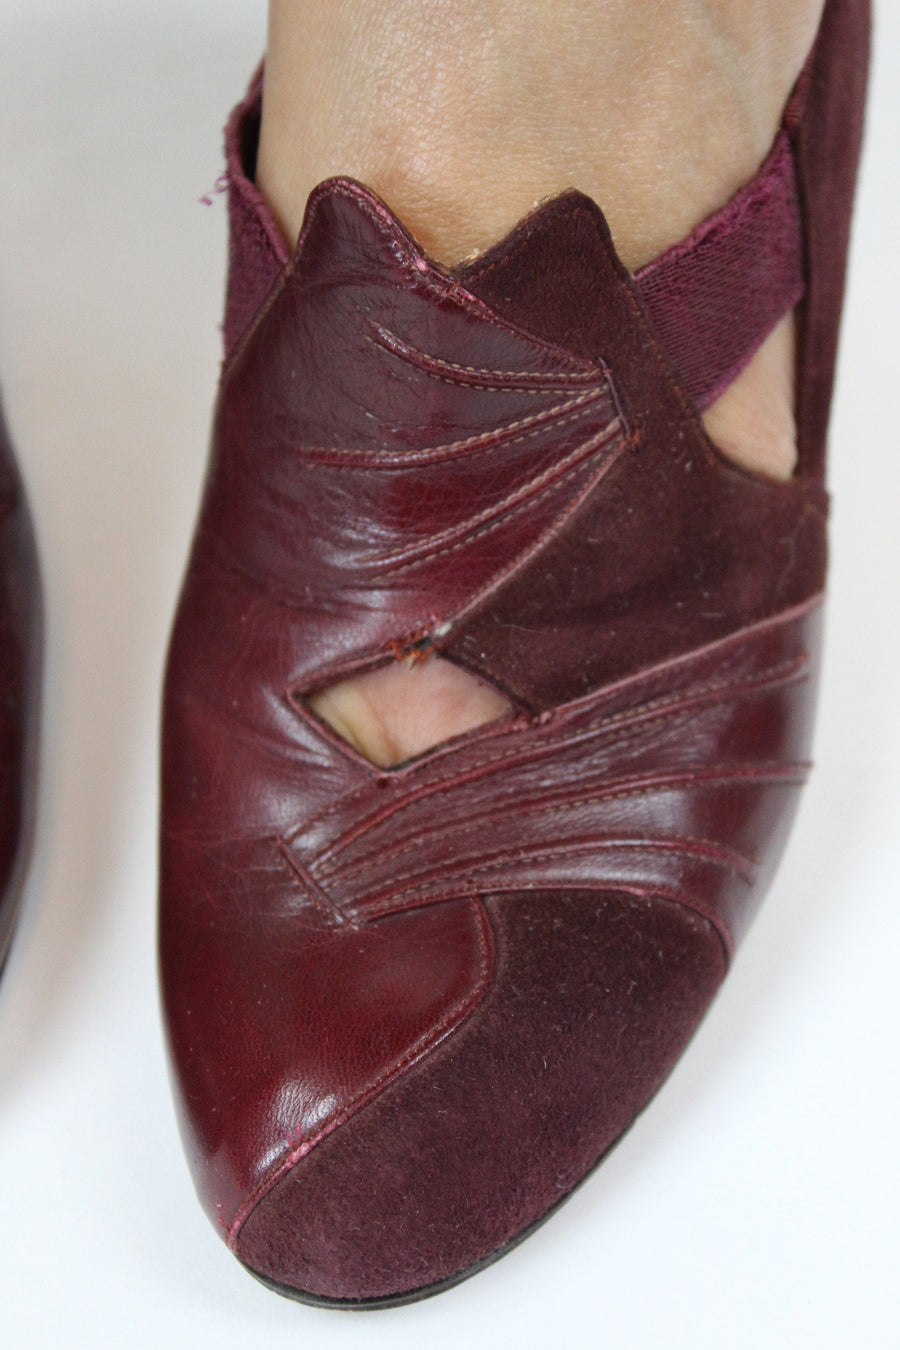 1930s suede leather shoes | slip on cutout heels | size 4.5